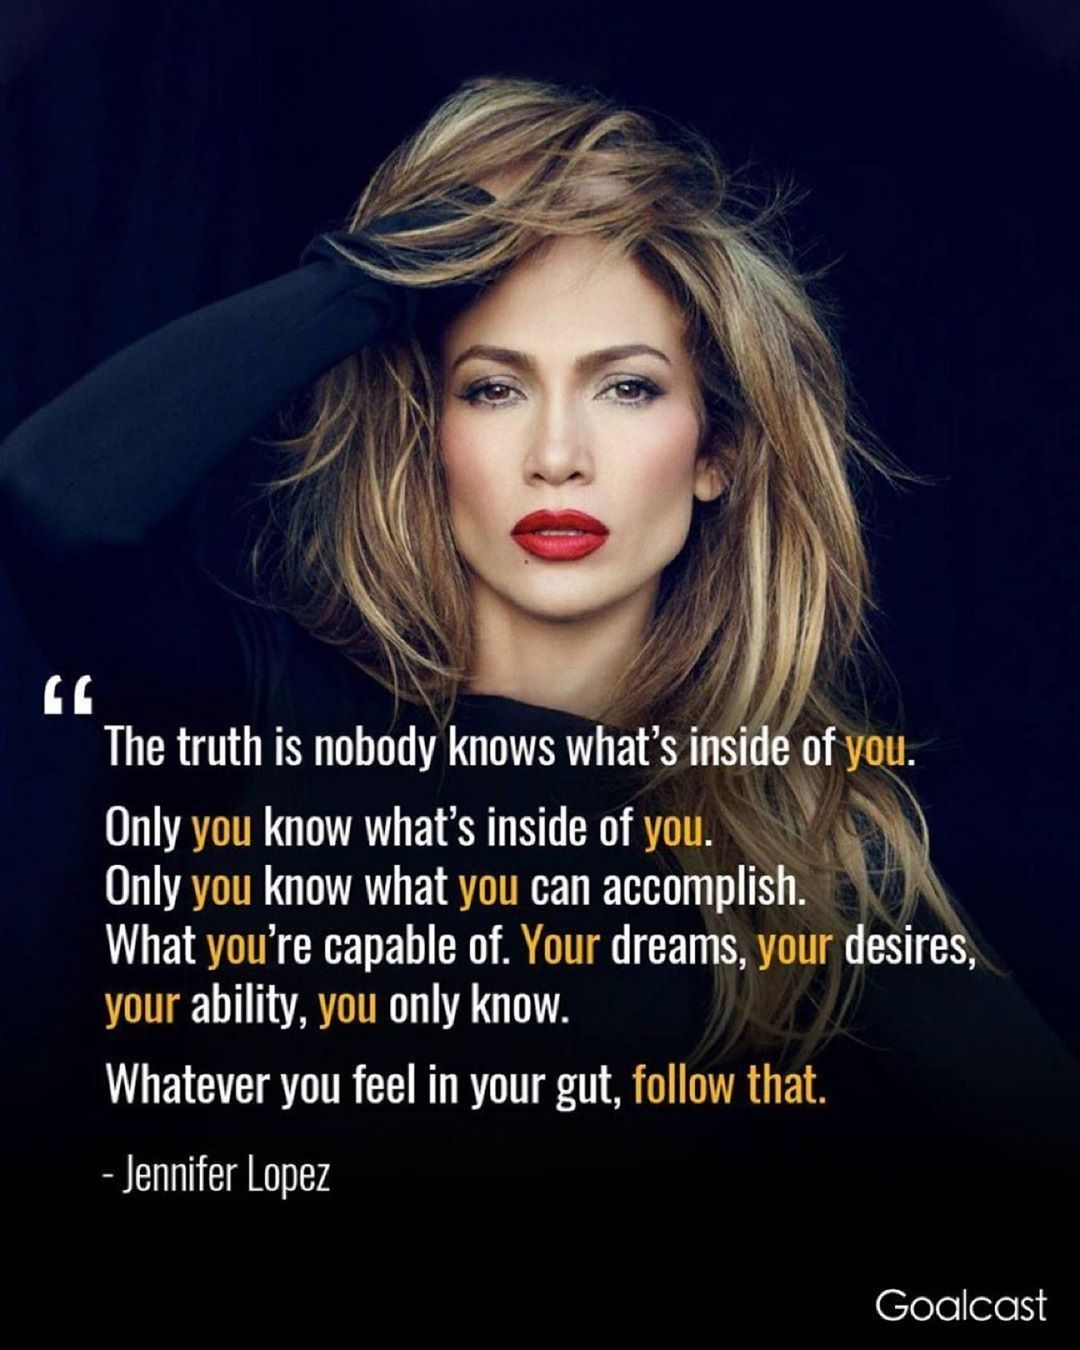 Happy 50th Birthday To The One And Only J Lo Jlo Jenniferlopez Happybirthday Happy50th Inspiration In Jennifer Lopez Quotes Woman Quotes Jennifer Lopez